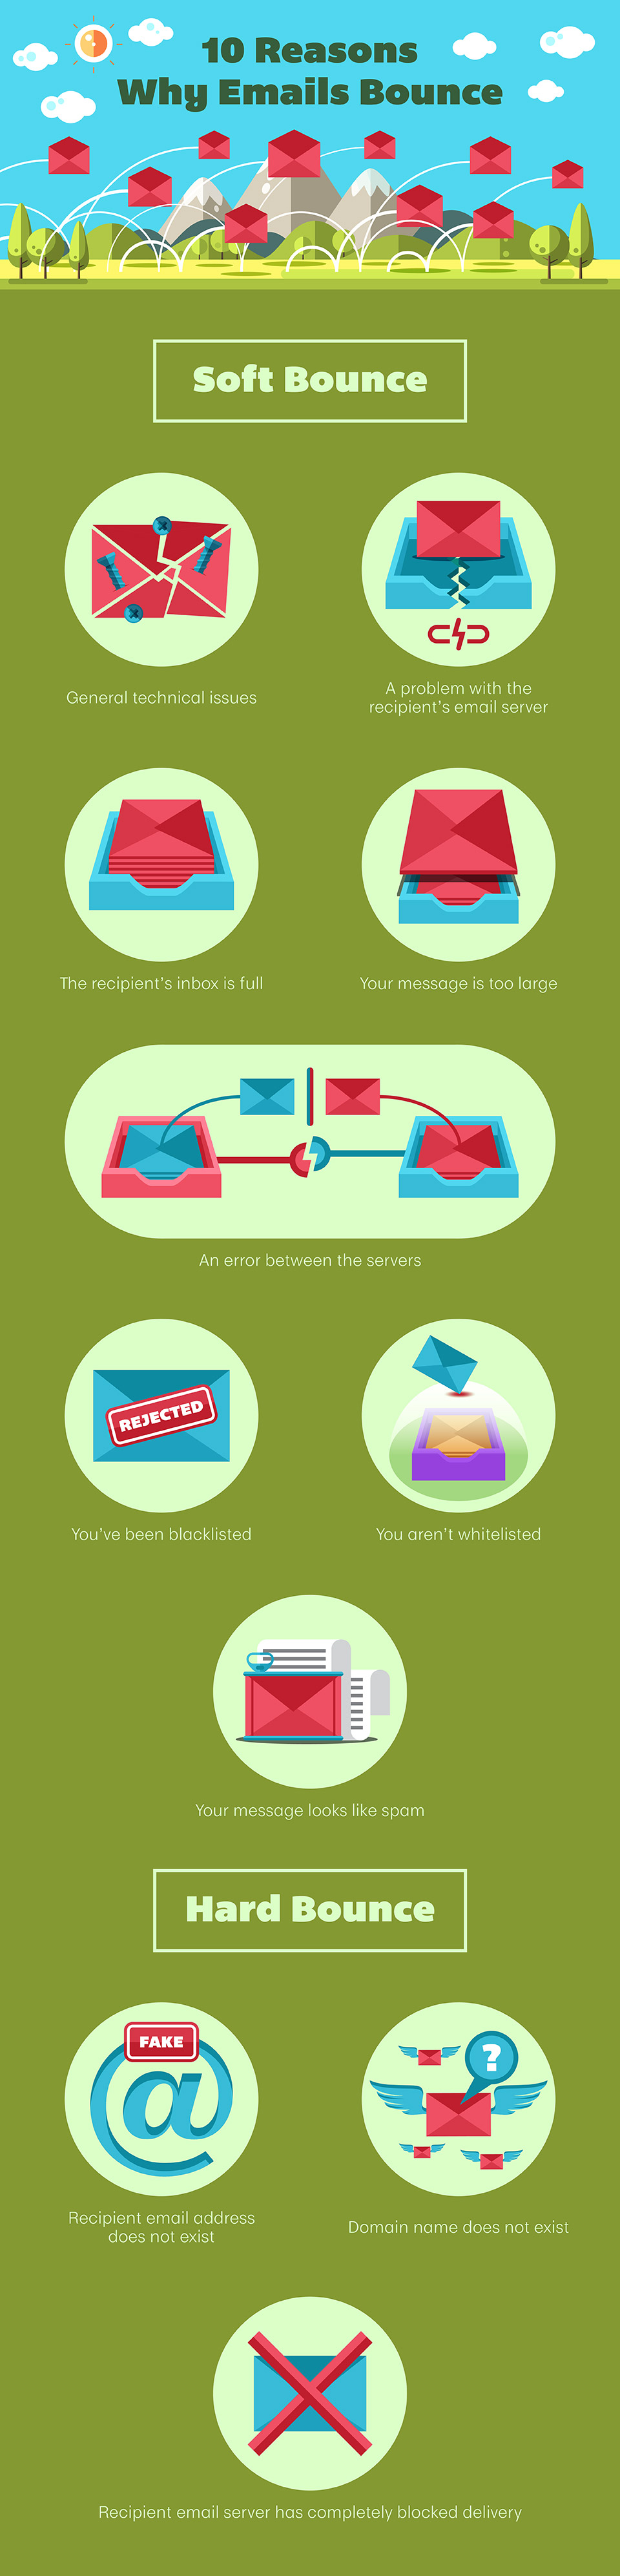 10 reasons why emails bounce